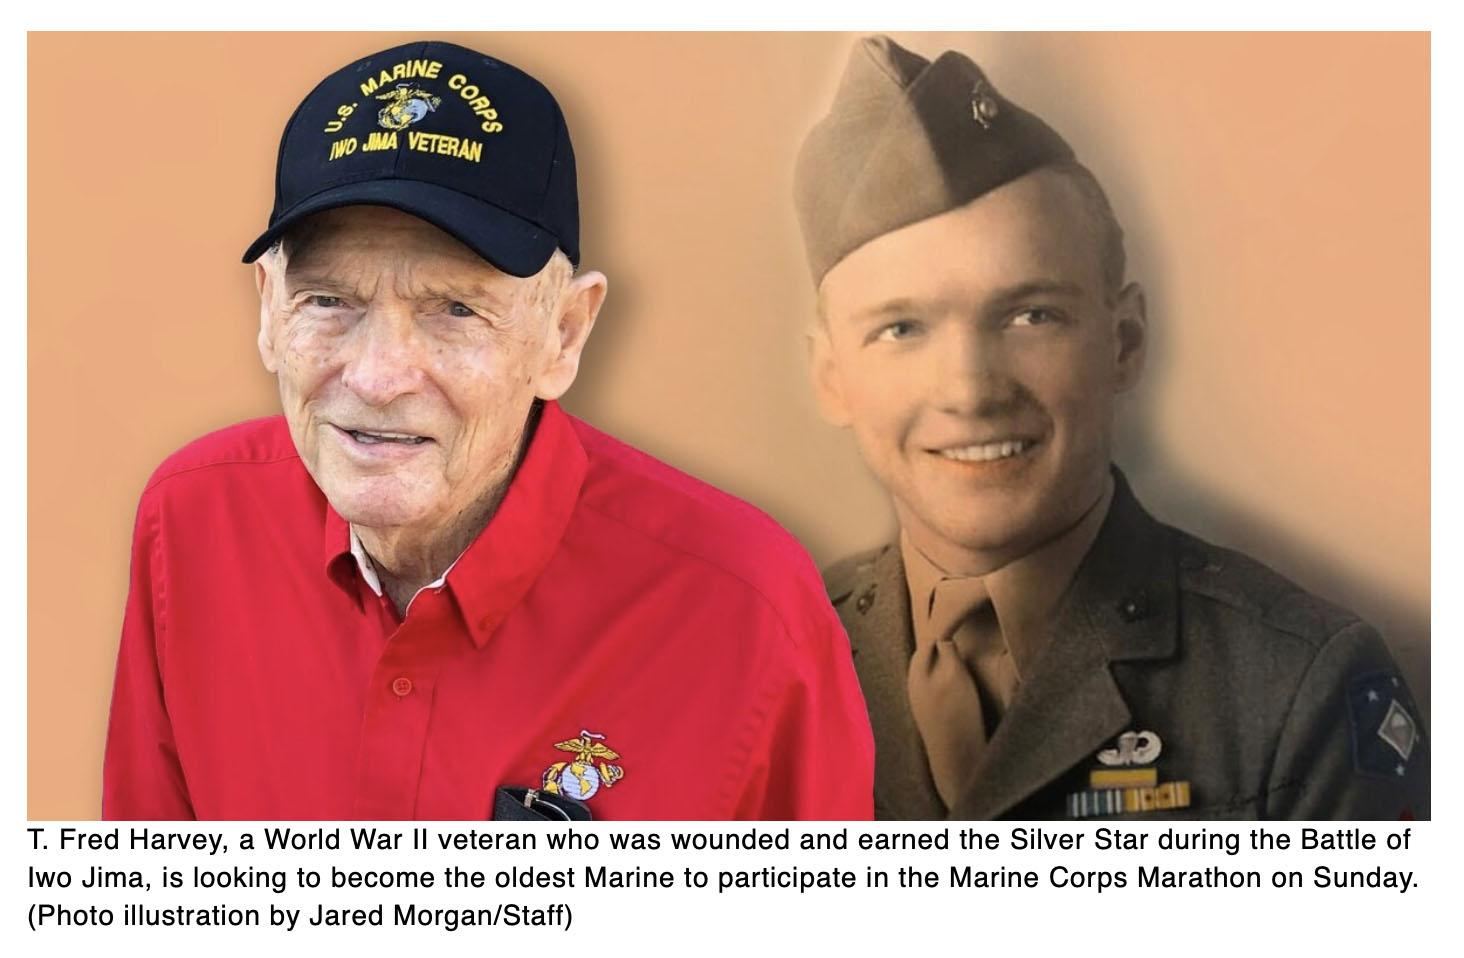 97-year-old Silver Star Iwo Jima veteran to be oldest Marine participant in Marine Corps Marathon